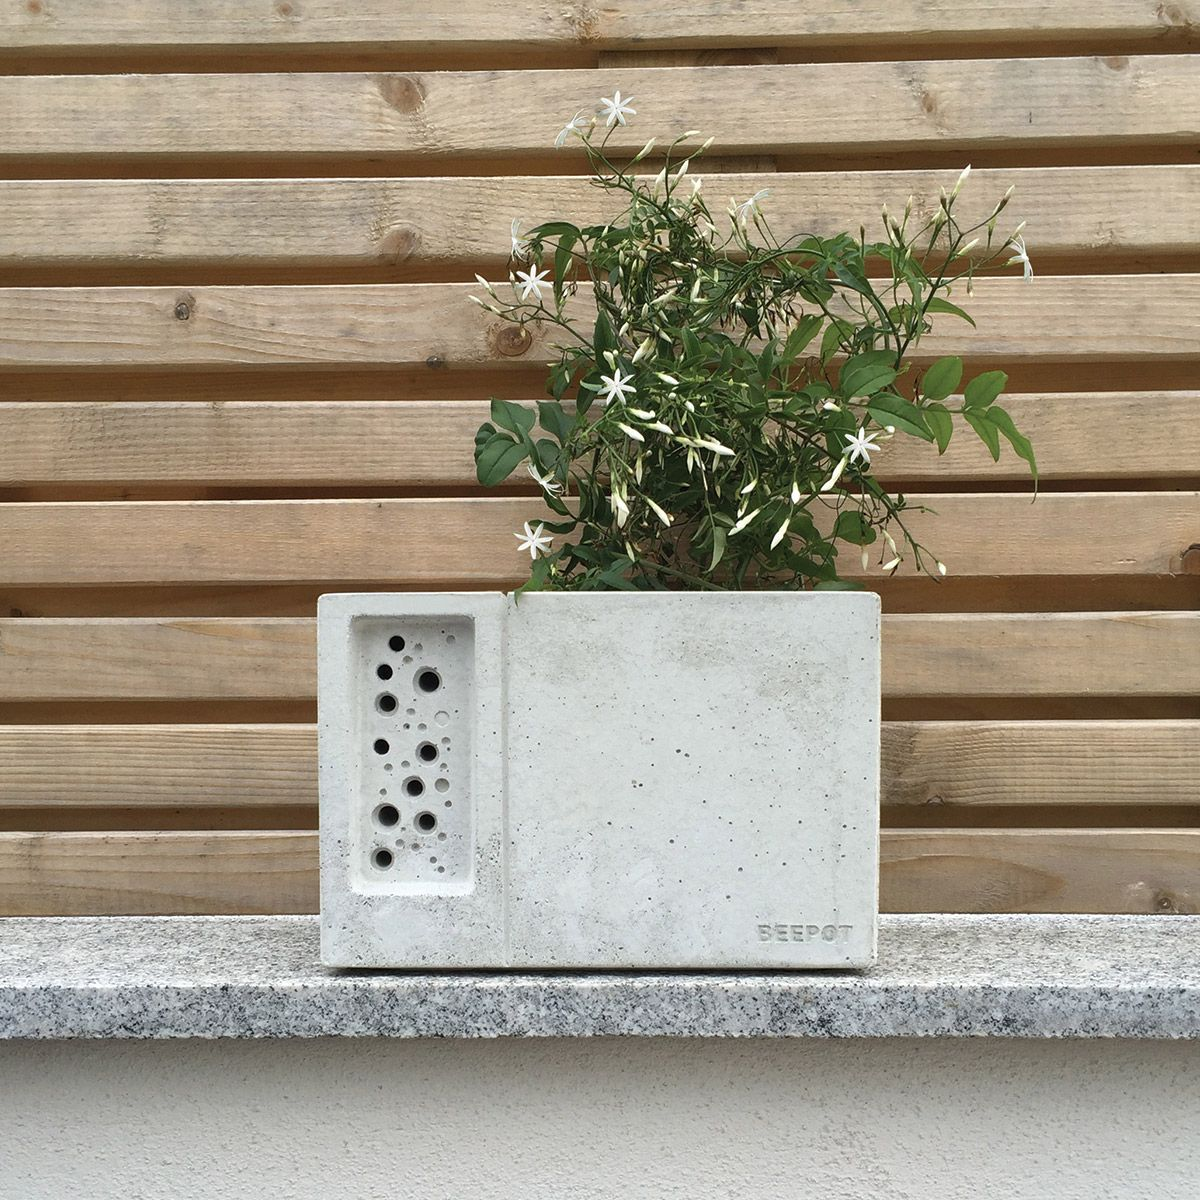 The Beepot Bee Hotel Is A Beautiful Concrete Planter Inspired By The Award  Winning Bee Brick